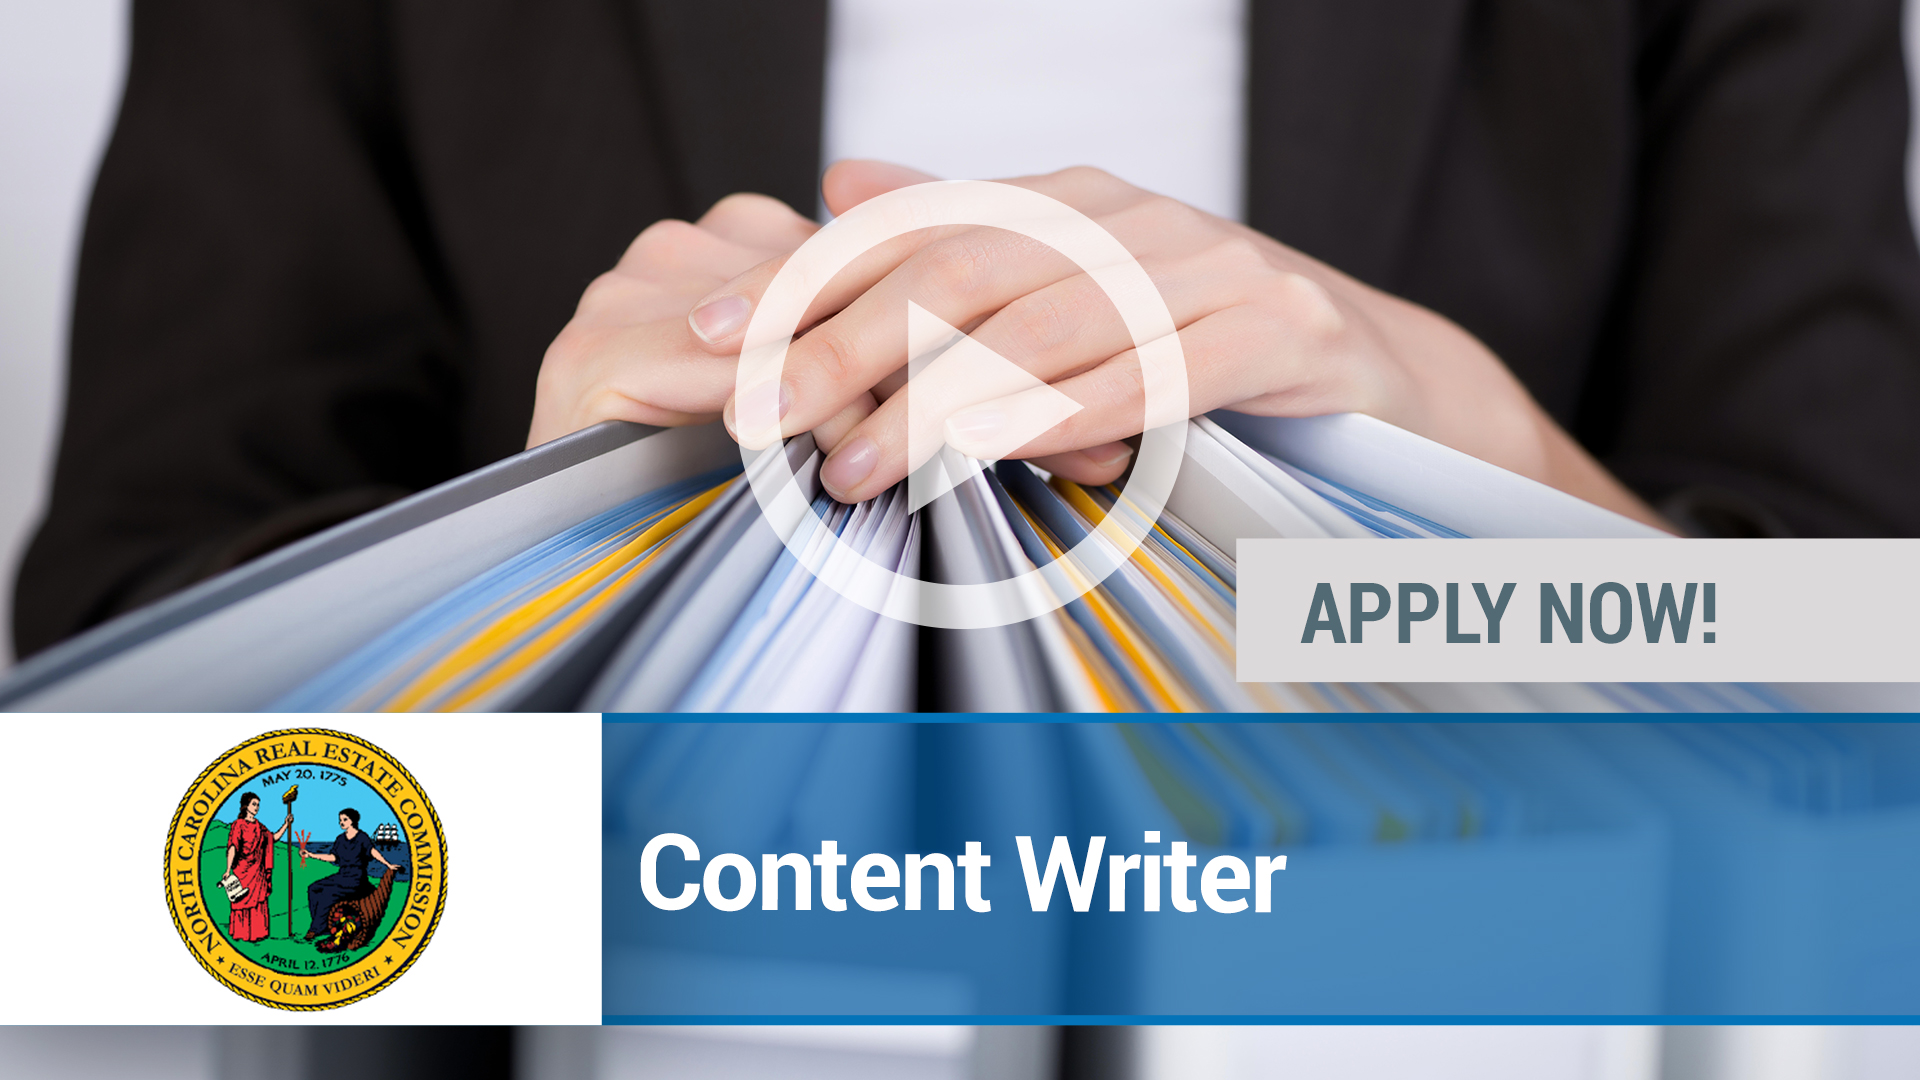 Watch our careers video for available job opening Content Writer in Raleigh, NC